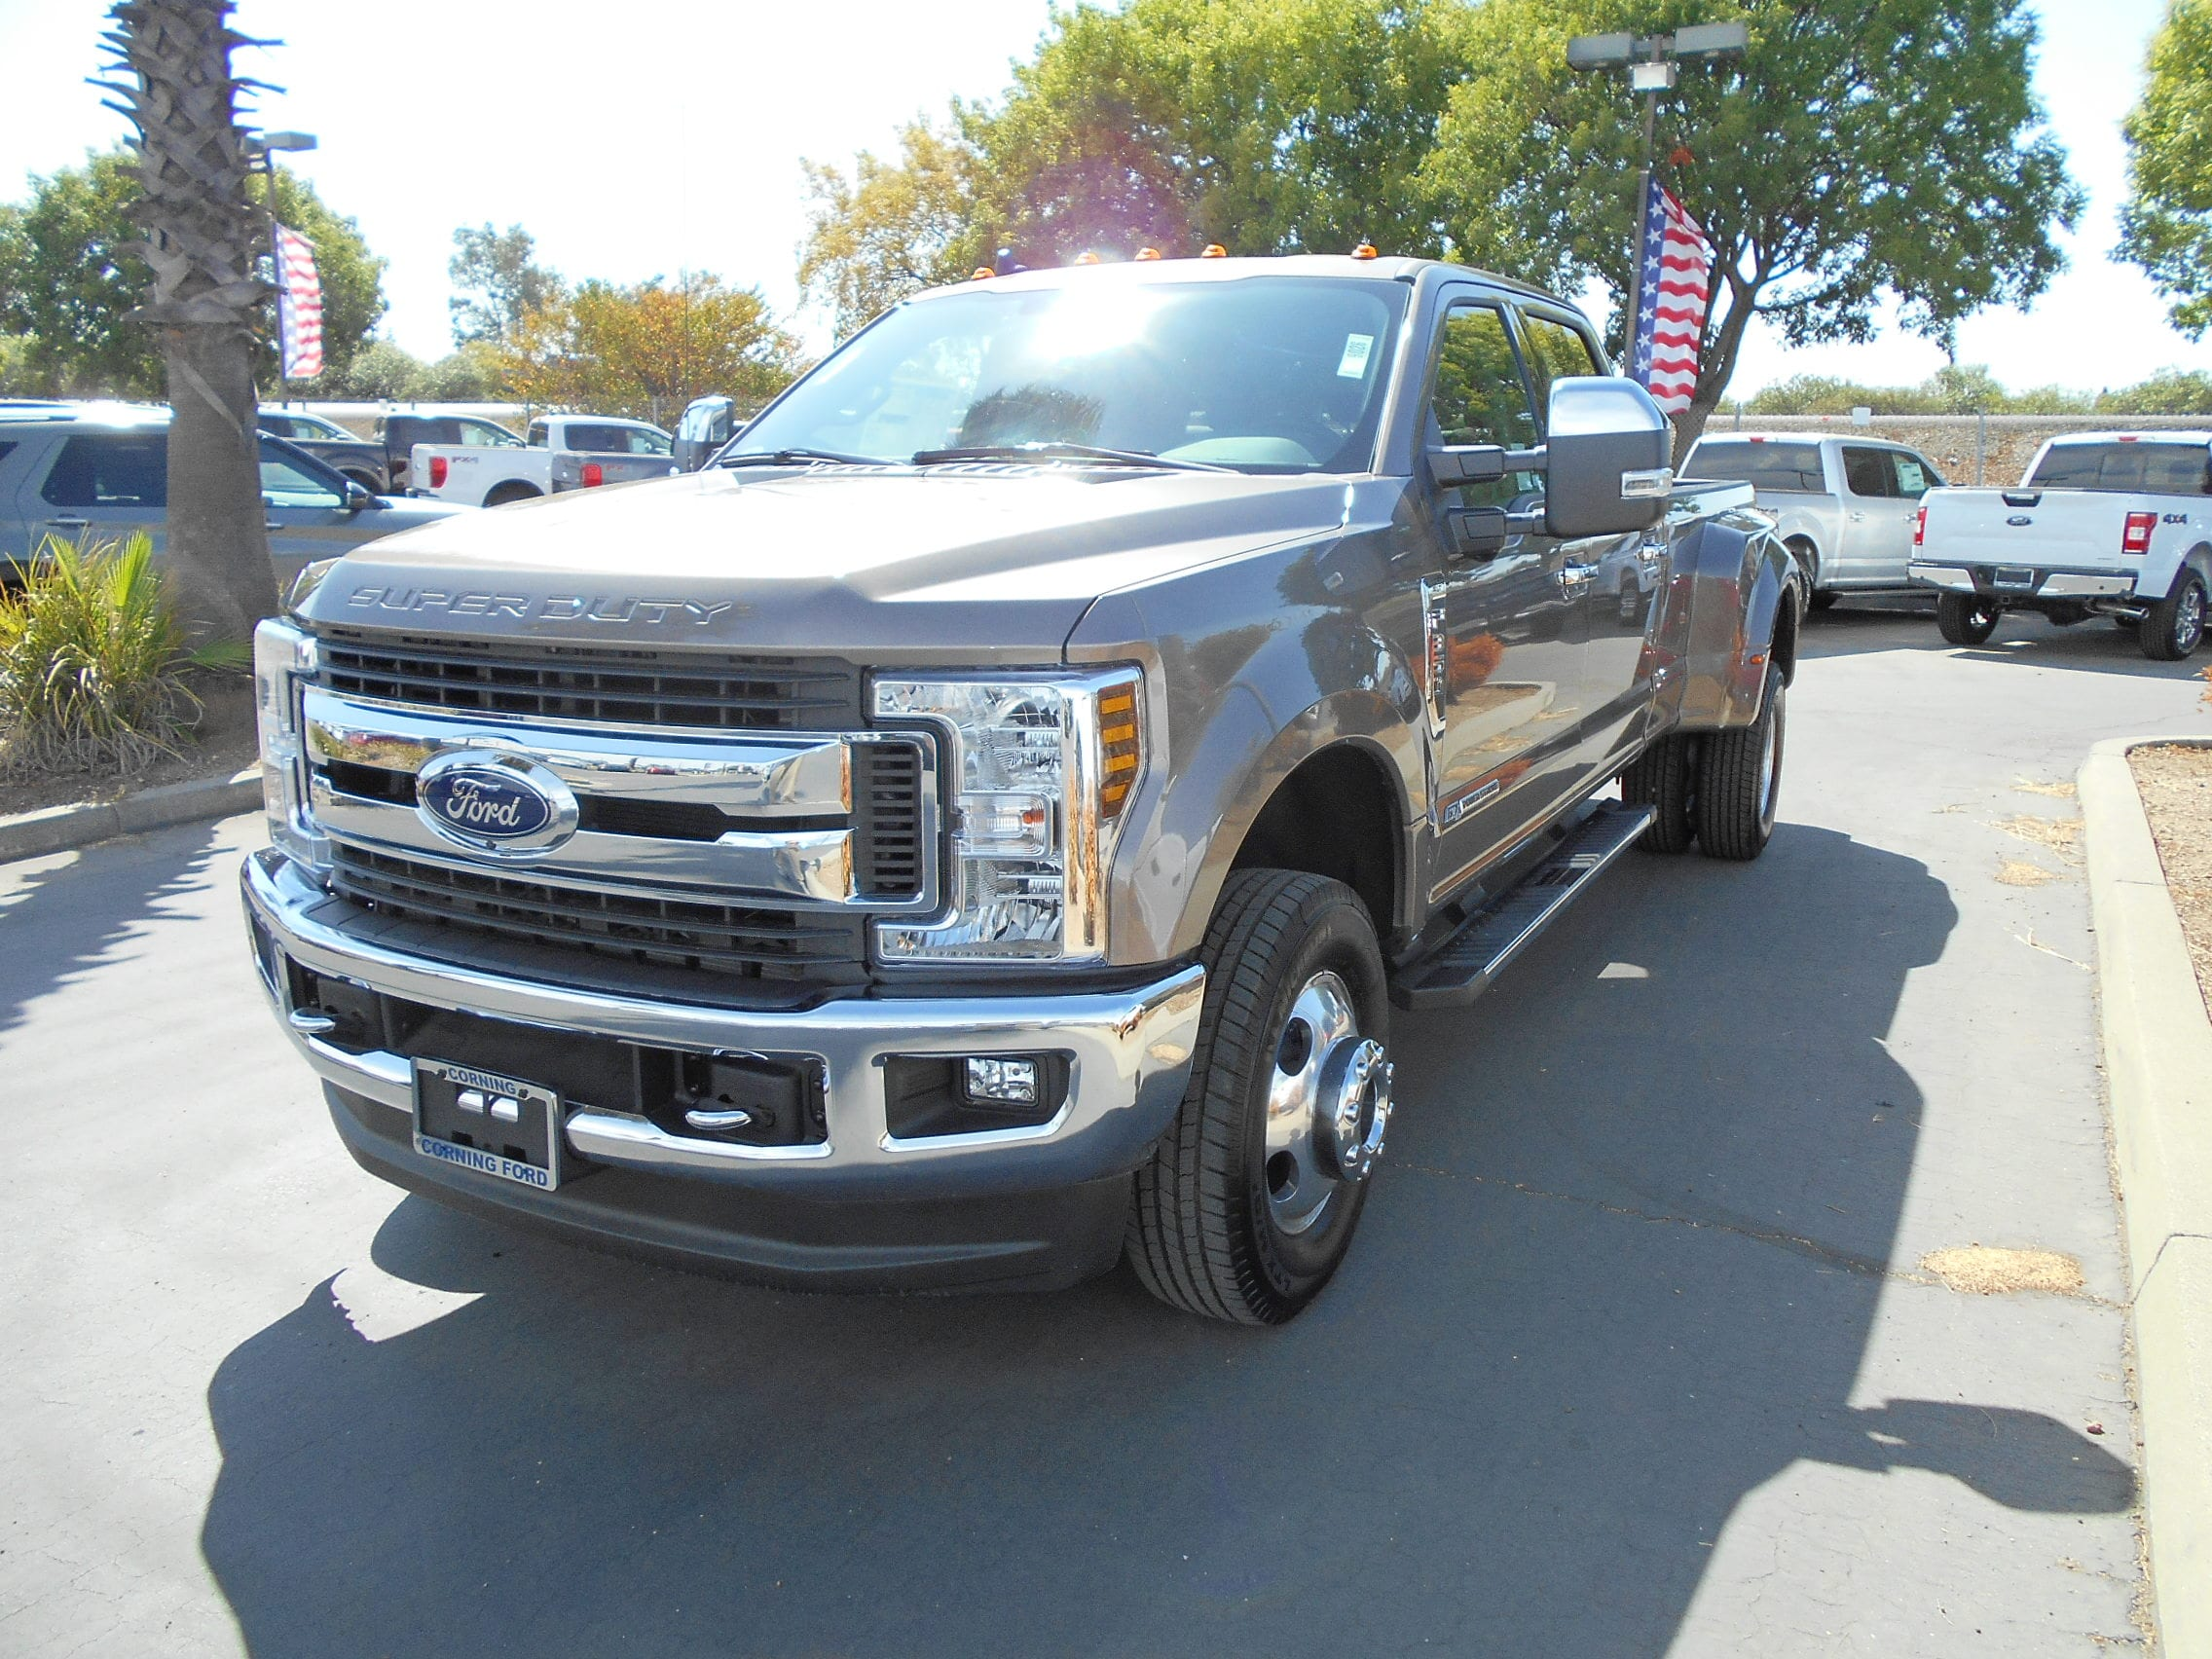 New 8 Ford F-8 Pickup for sale in Corning, CA | #8 | corning ford